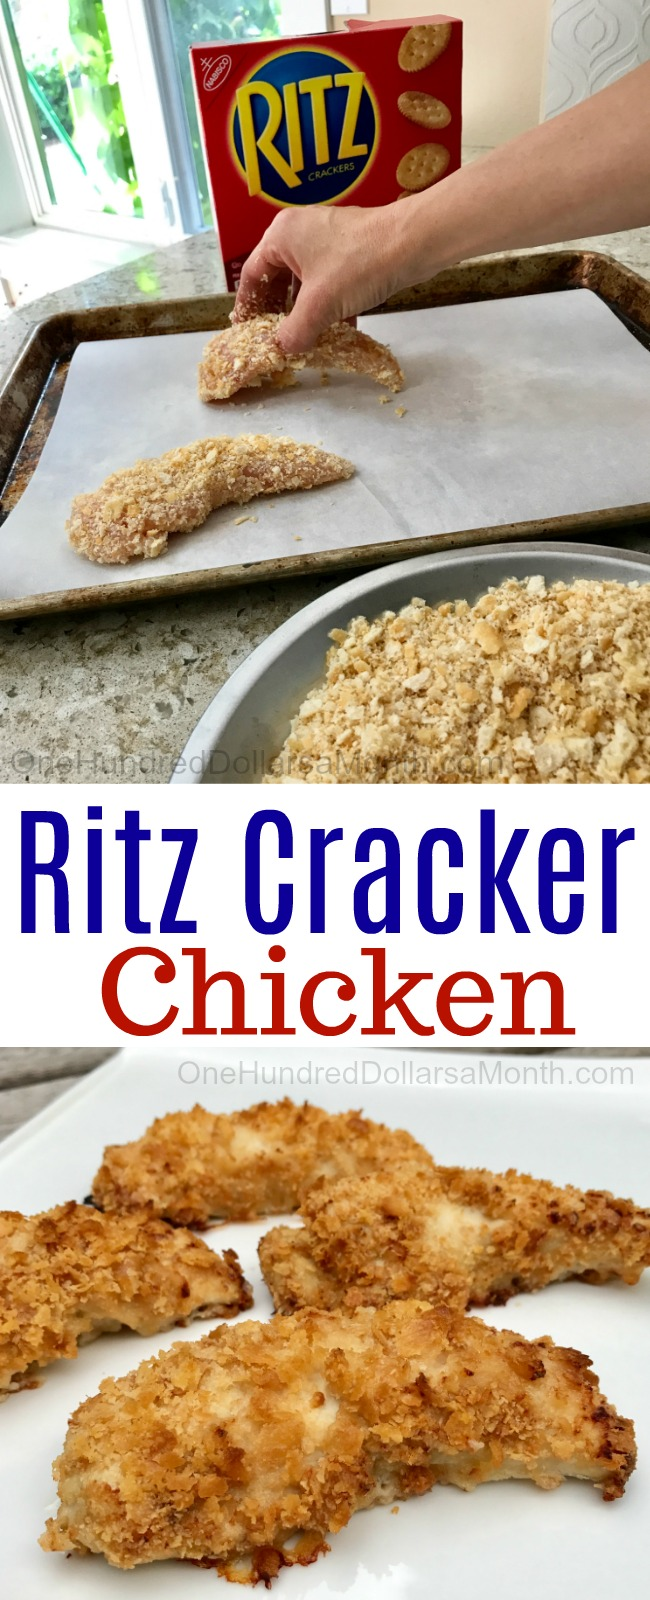 Easy Chicken Recipes – Ritz Cracker Chicken